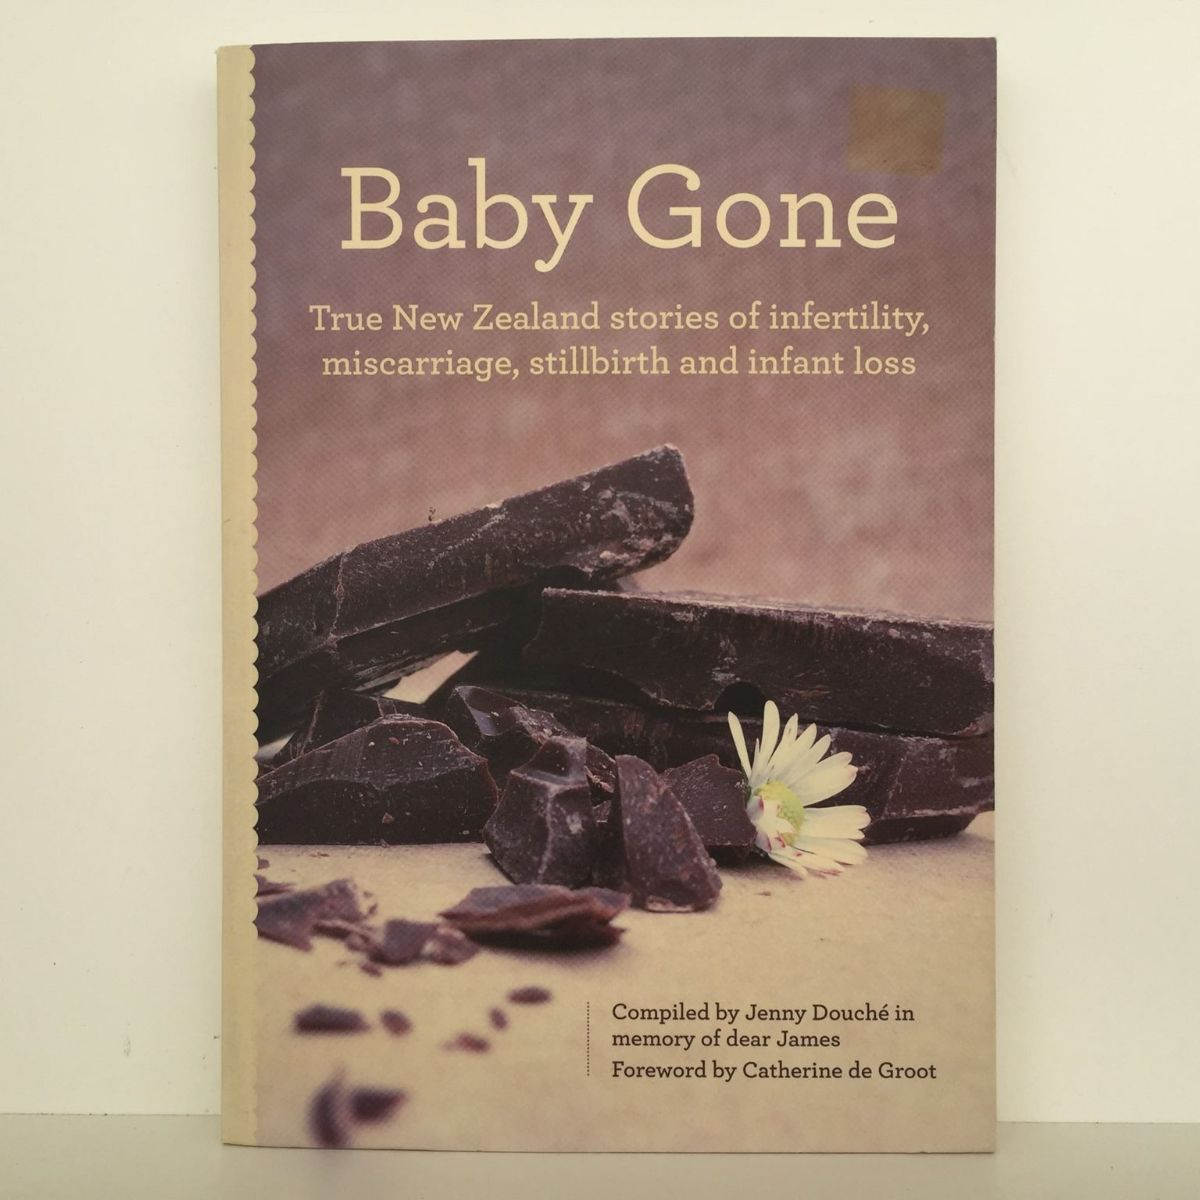 Baby Gone : True New Zealand Stories of Infertility, Miscarriage, Stillbirth and Infant Loss